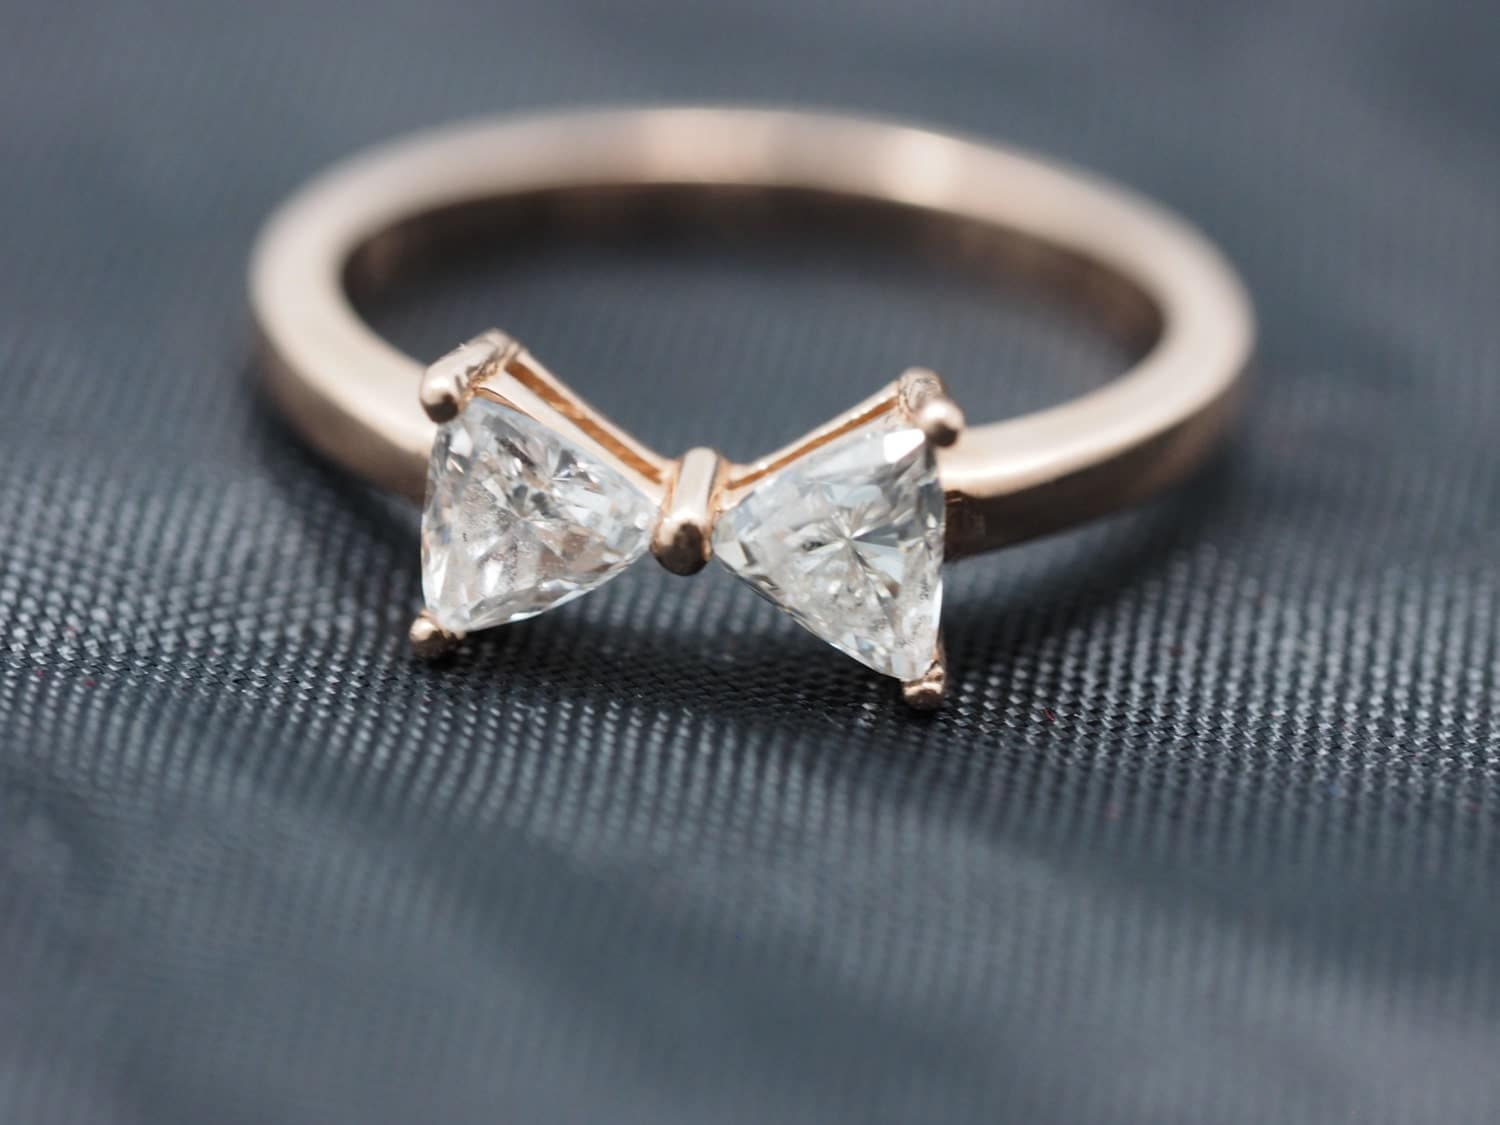 14k Rose Gold Diamond Bowtie Ring Rose Gold Bow Tie Ring. Nice Rings. Tolkowsky Engagement Rings. The Natural Sapphire Company Wedding Rings. Chrome Engagement Rings. Vintage Style Rings. Parade Rings. Ct Radiant Diamond Engagement Rings. Indian Rings